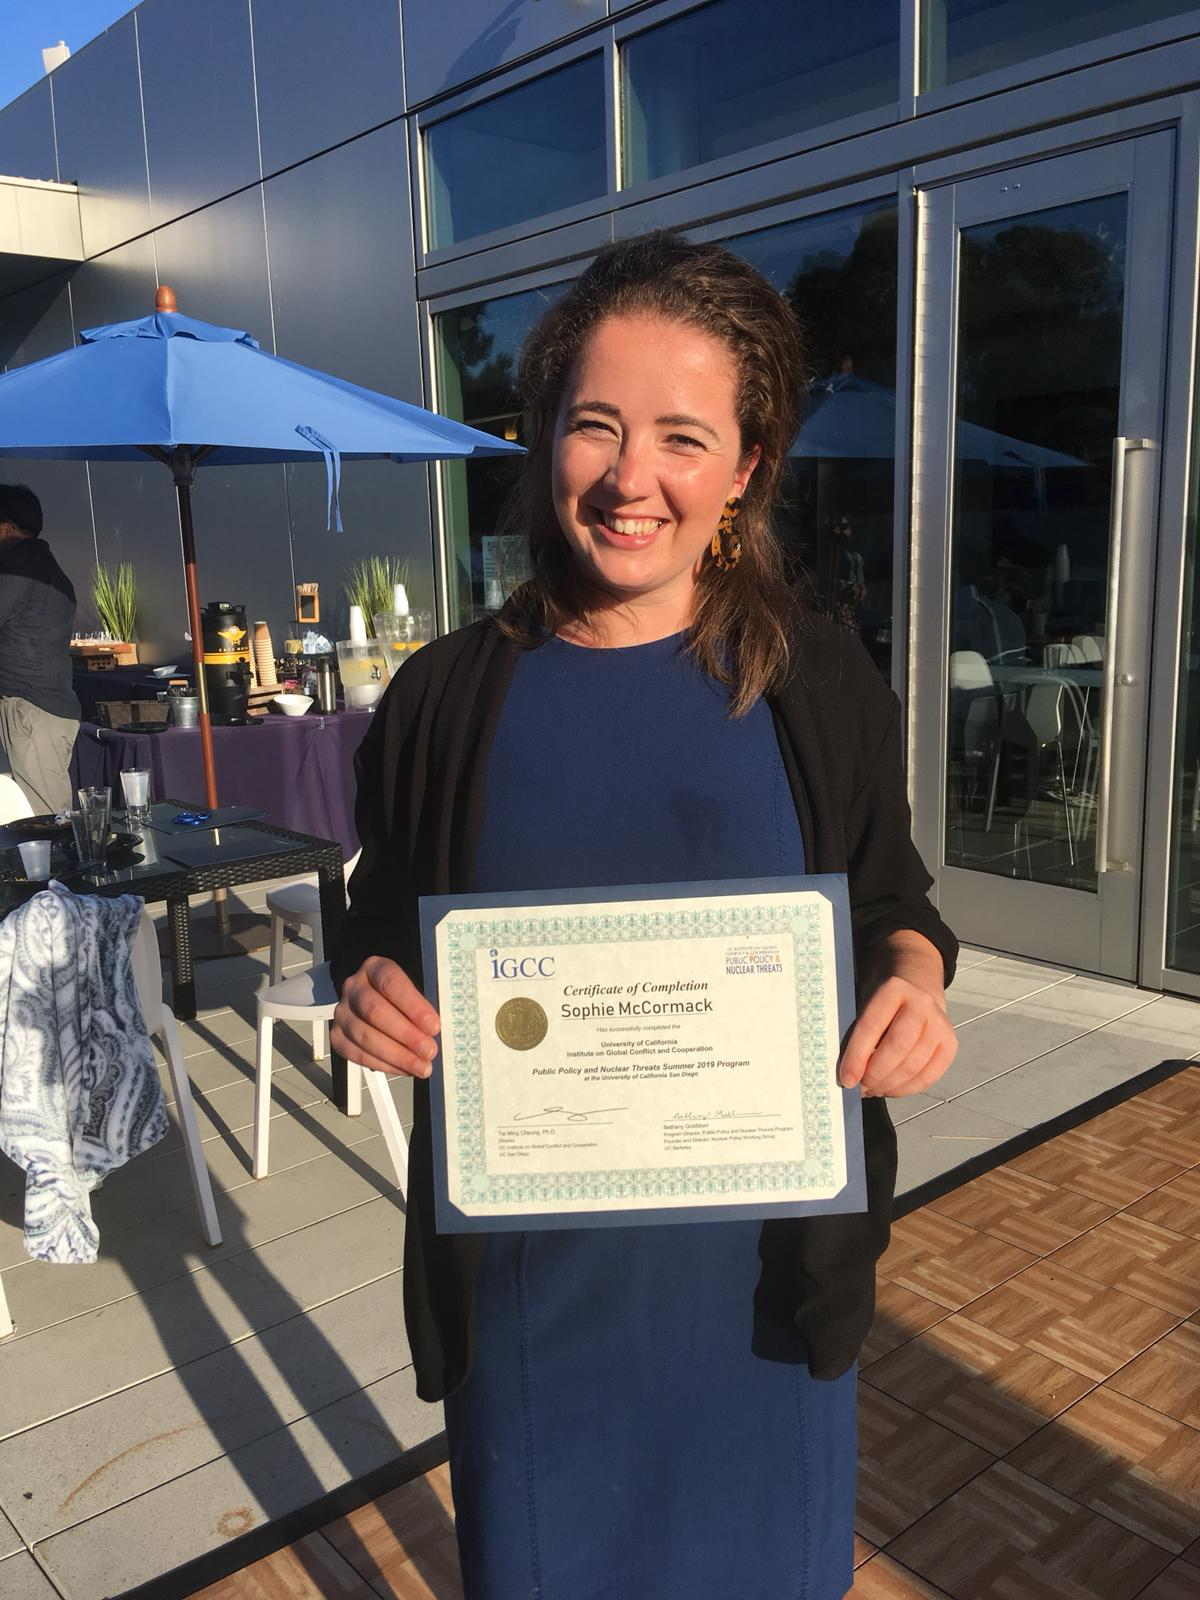 Sophie recently completed a Public Policy and Nuclear Threats course hosted at the University of San Diego.